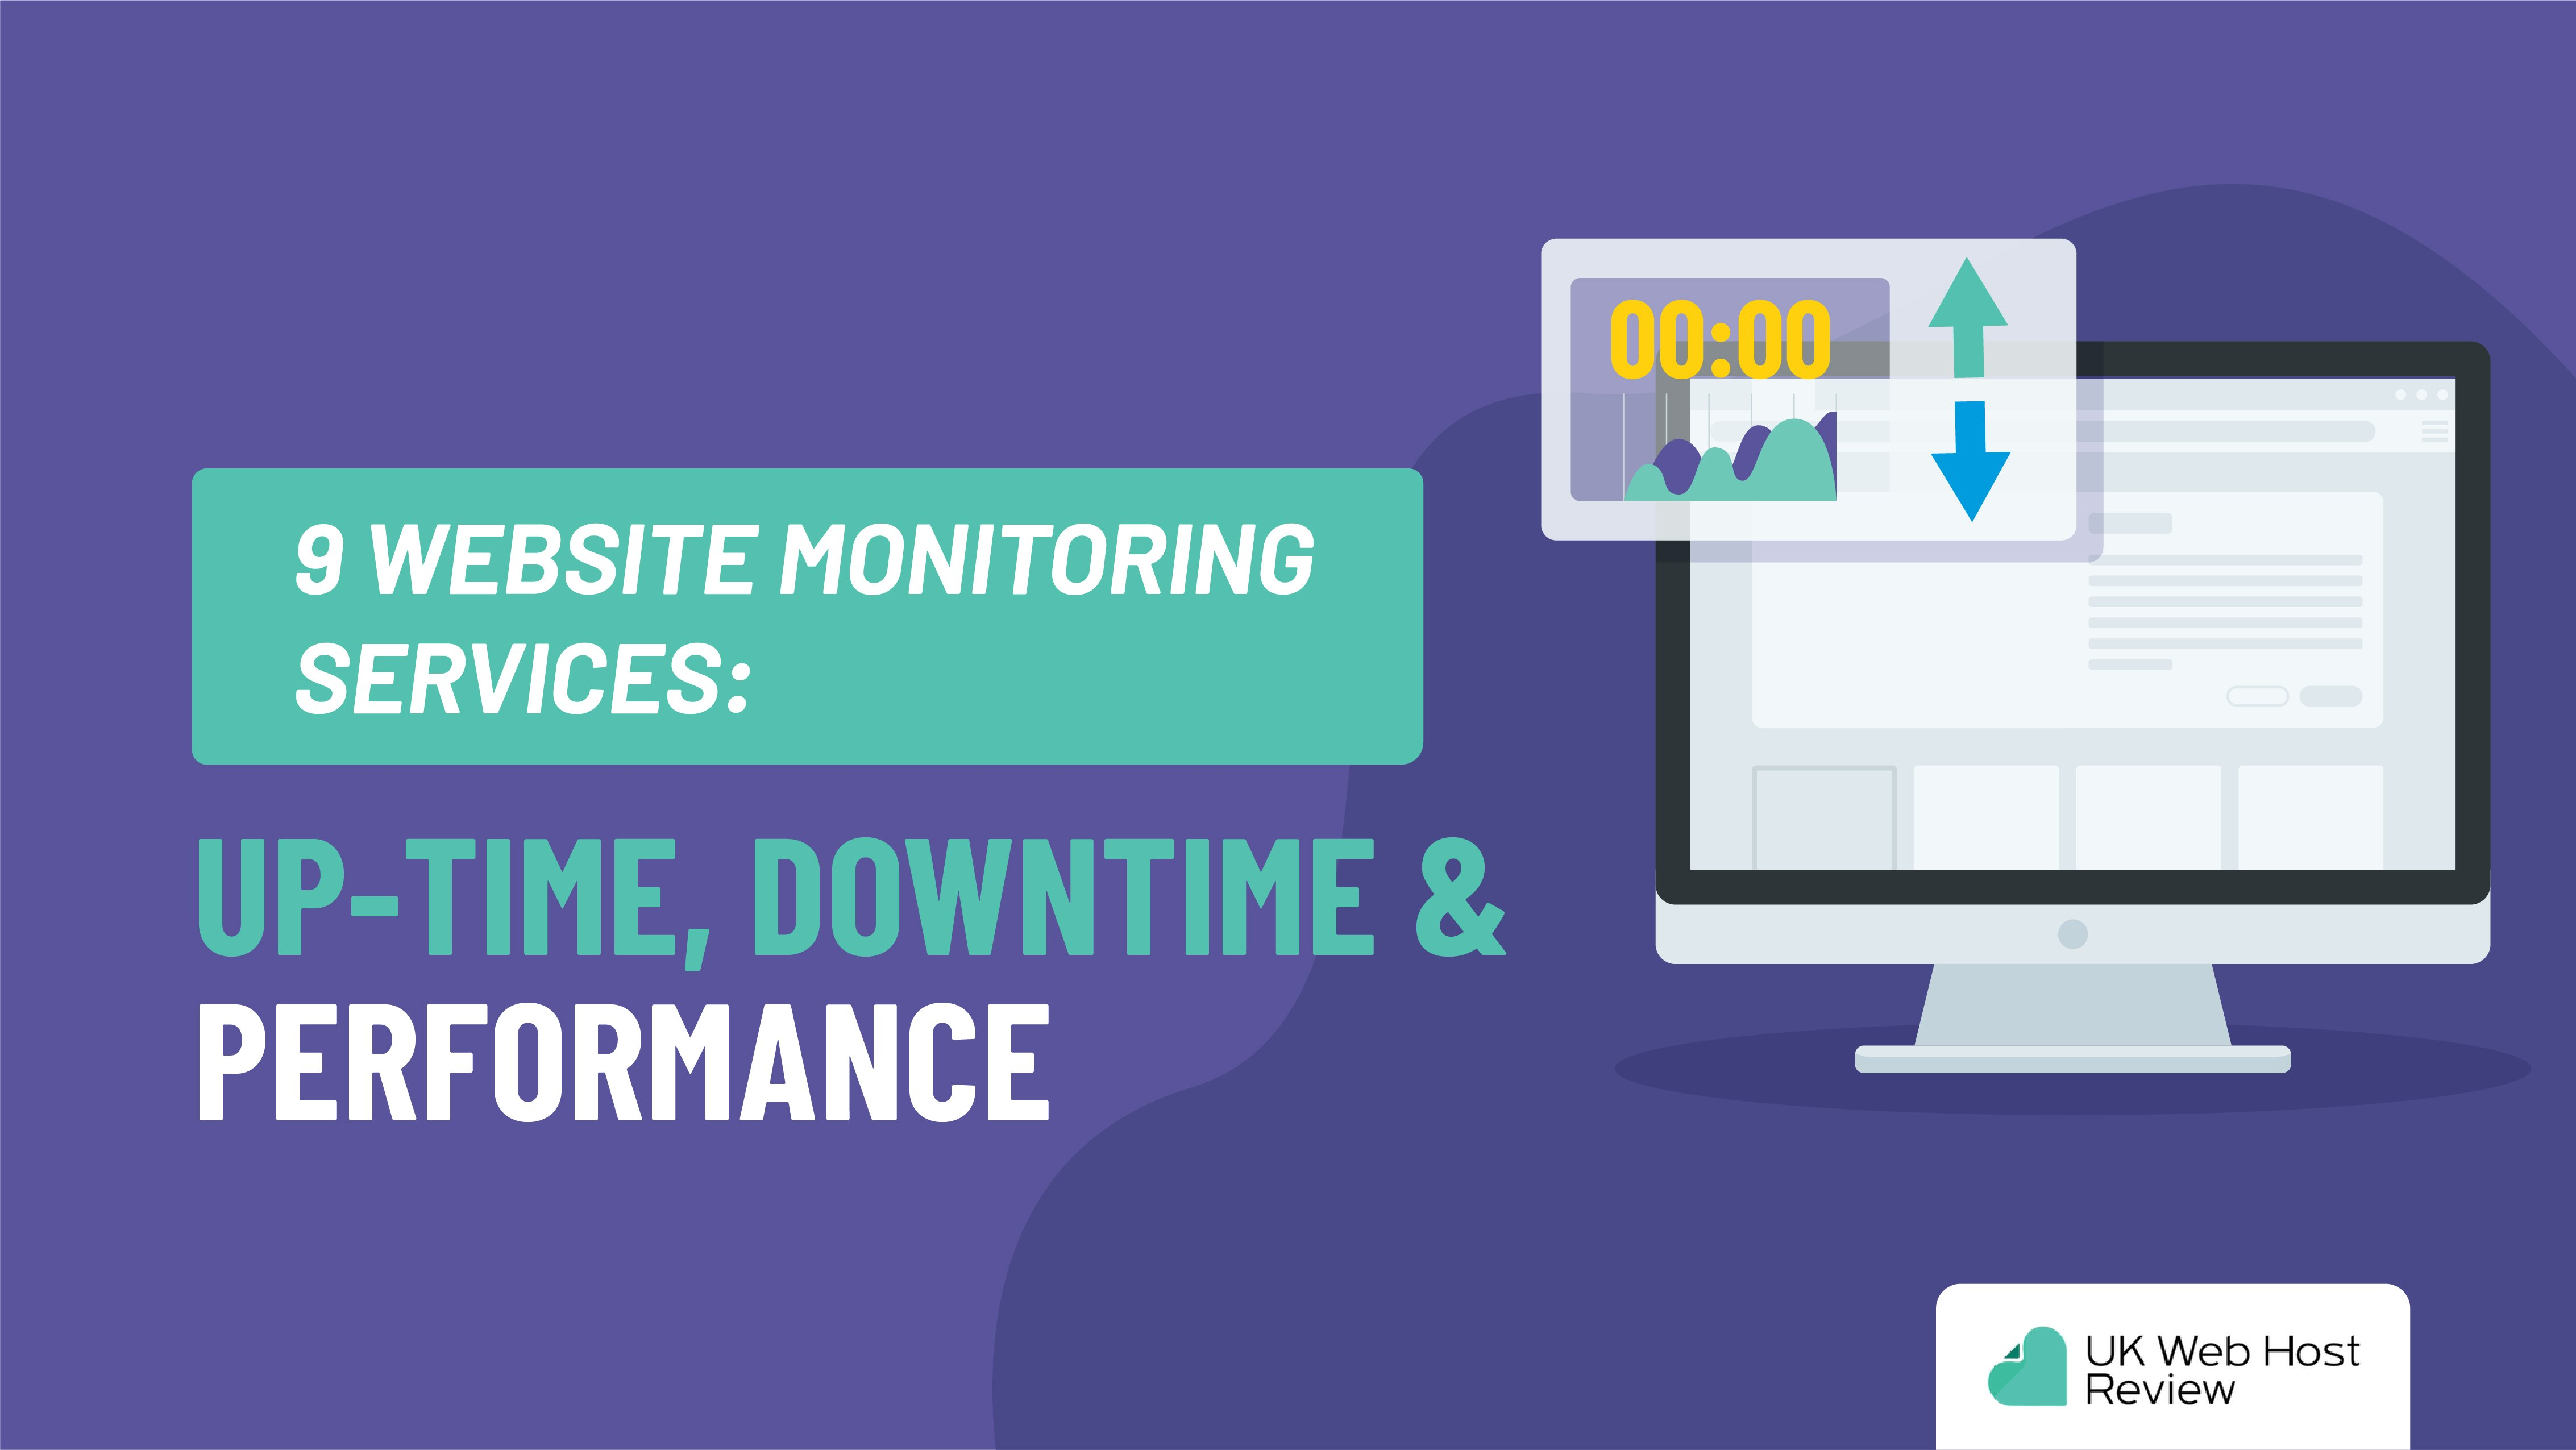 9 Website Monitoring Services: Up-time, Downtime & Performance